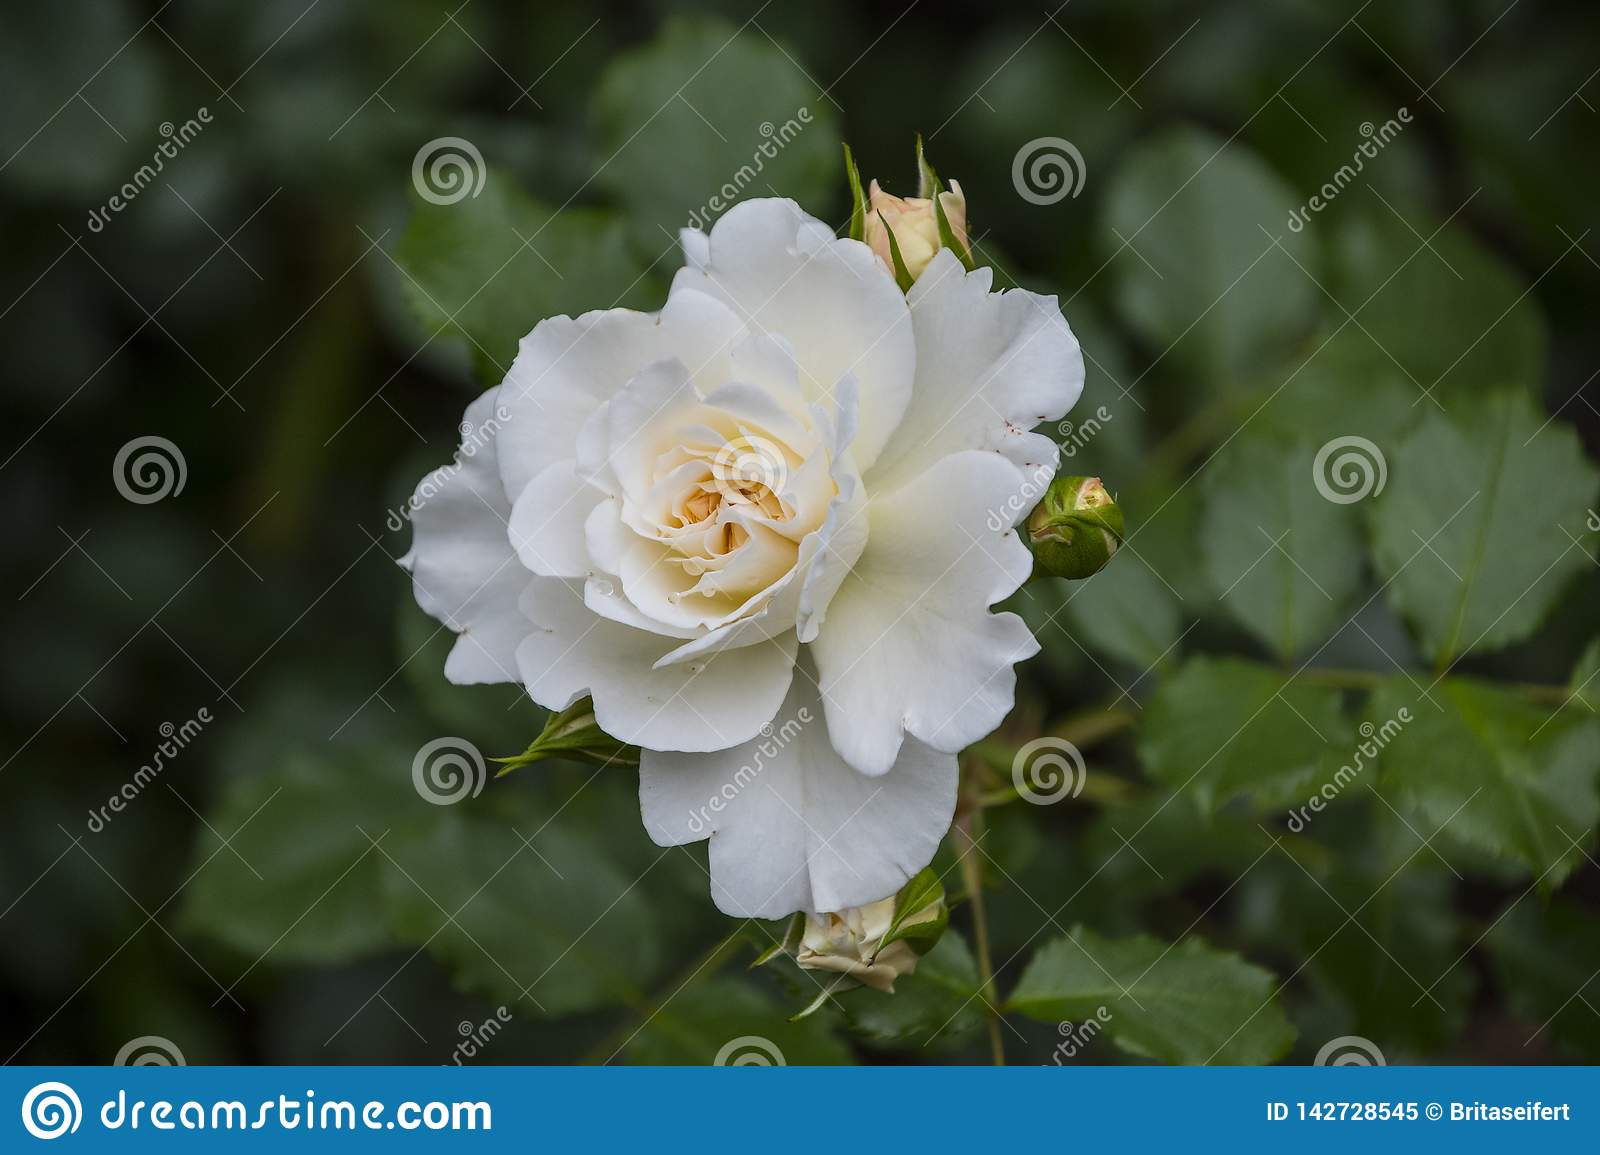 Rose flower closeup. Shallow depth of field. Spring flower of white rose royalty free stock photo